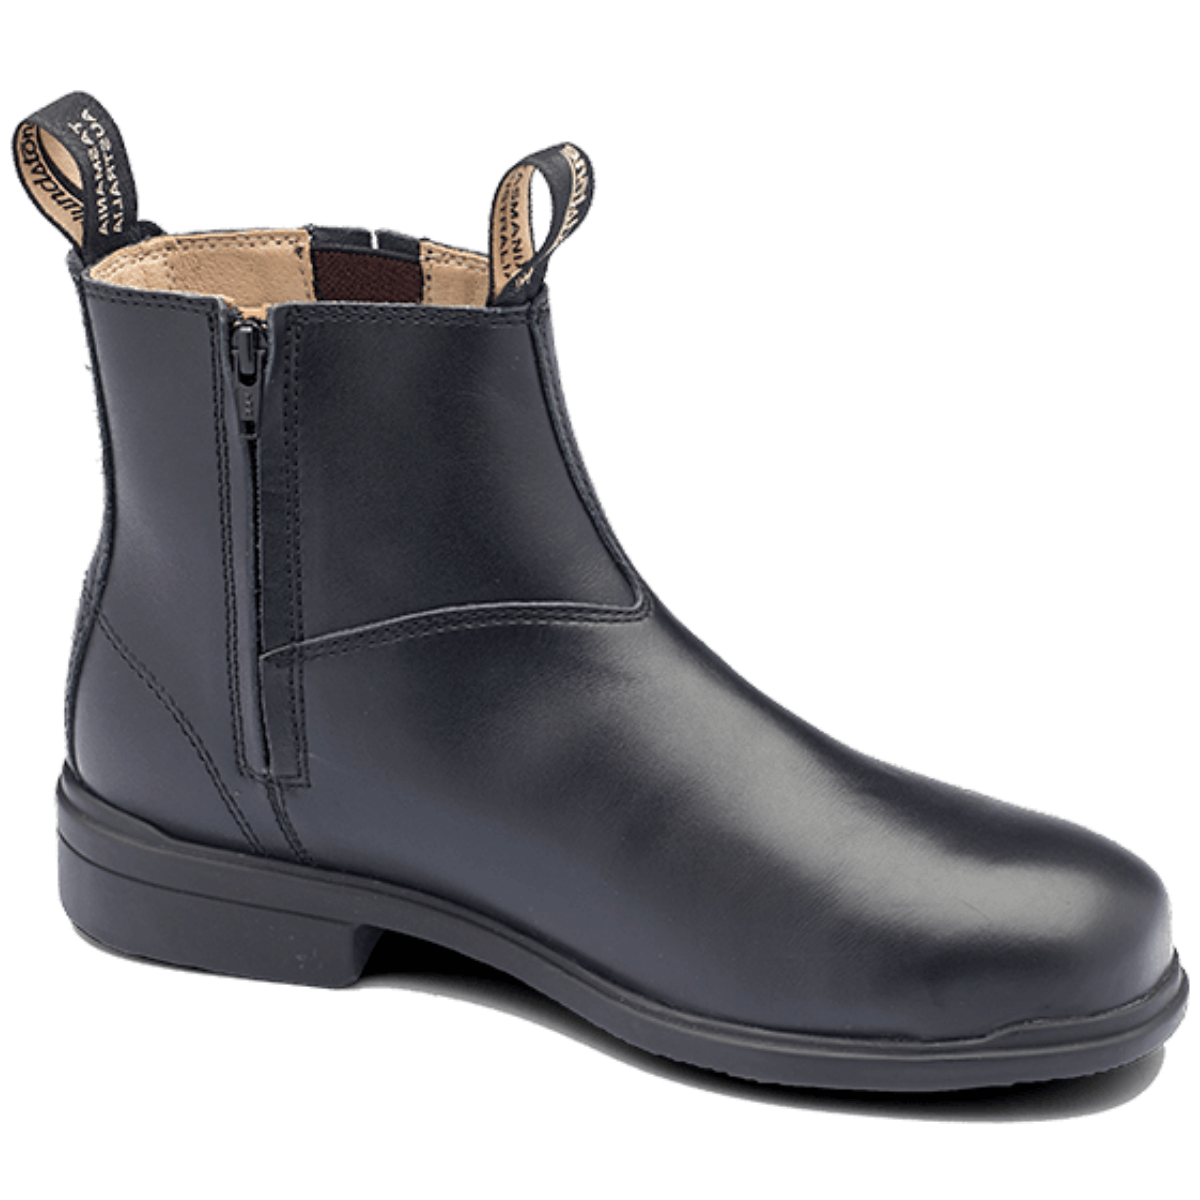 788fc132bc4 Blundstone 783 Zip Up Executive Safety Boot